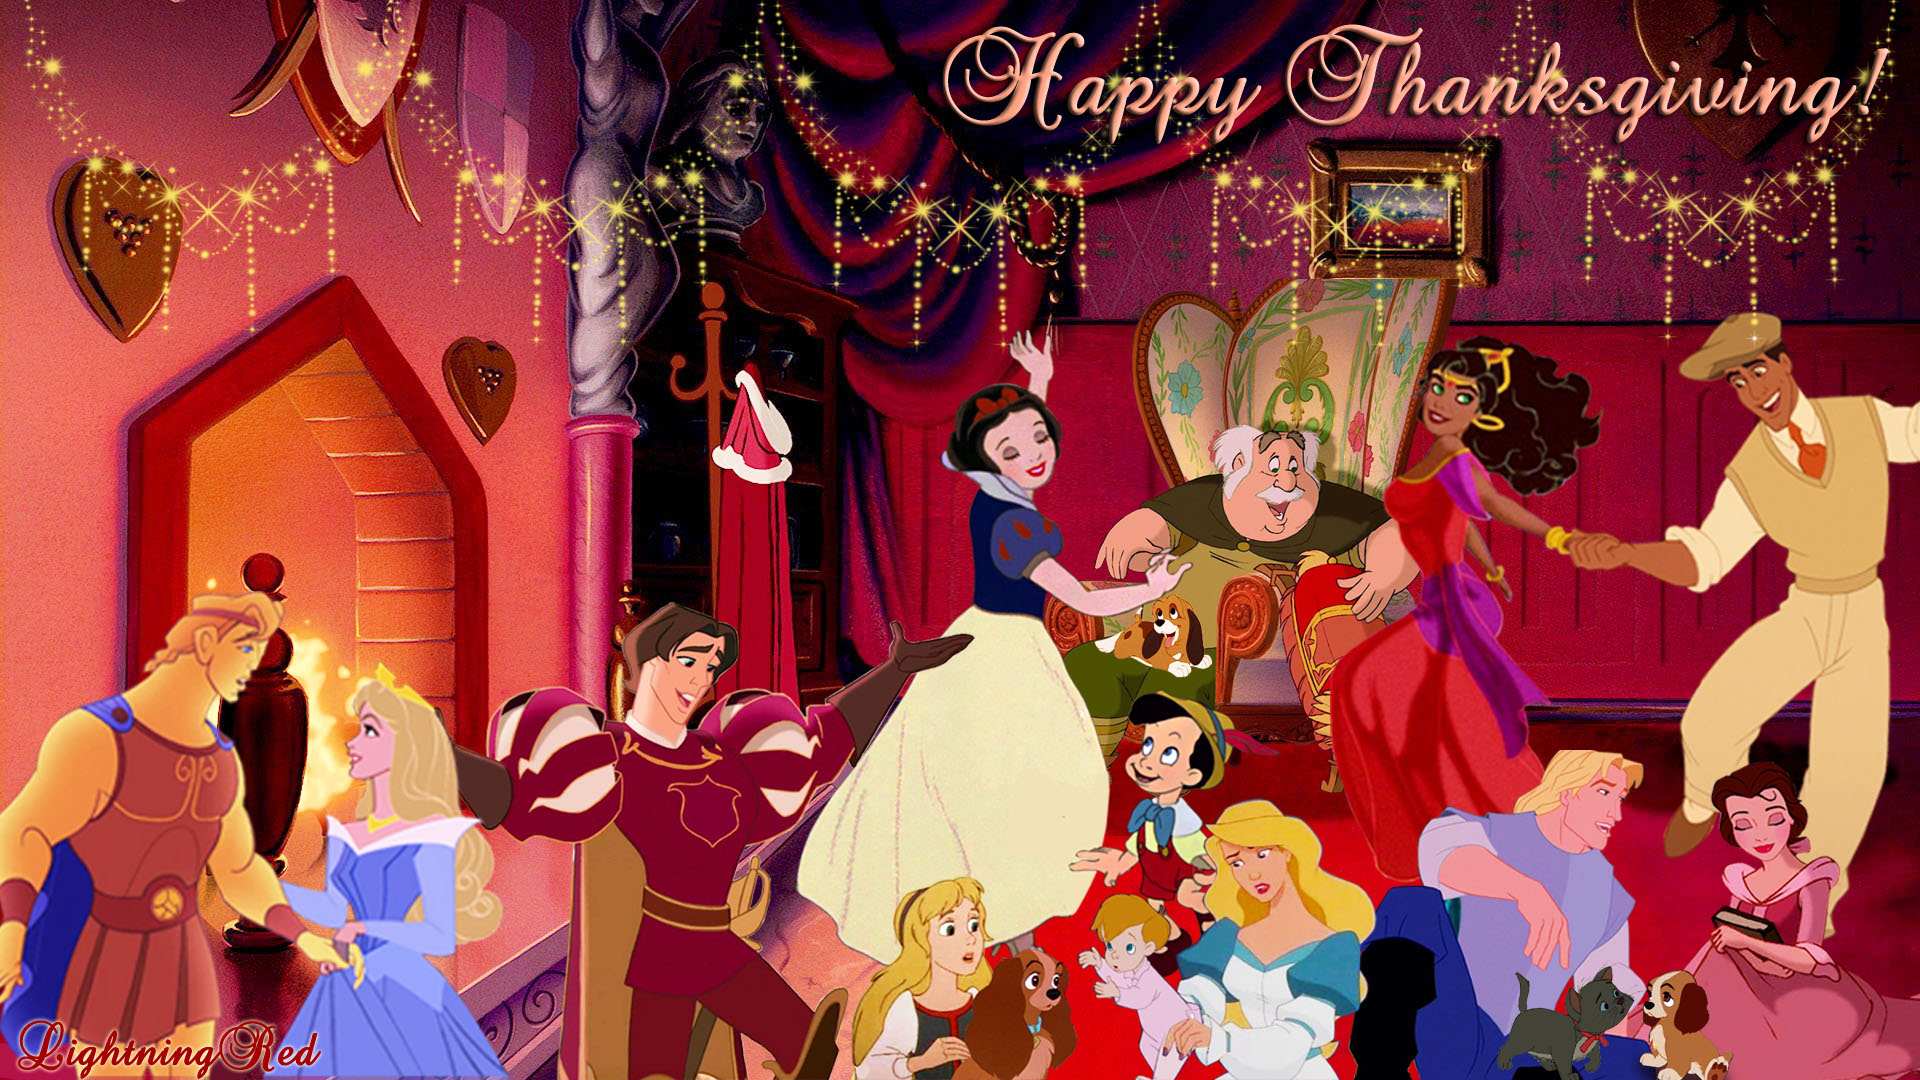 2 Year Old Girls Happy Birthday Wallpaper Free Disney Thanksgiving Hd Backgrounds Pixelstalk Net